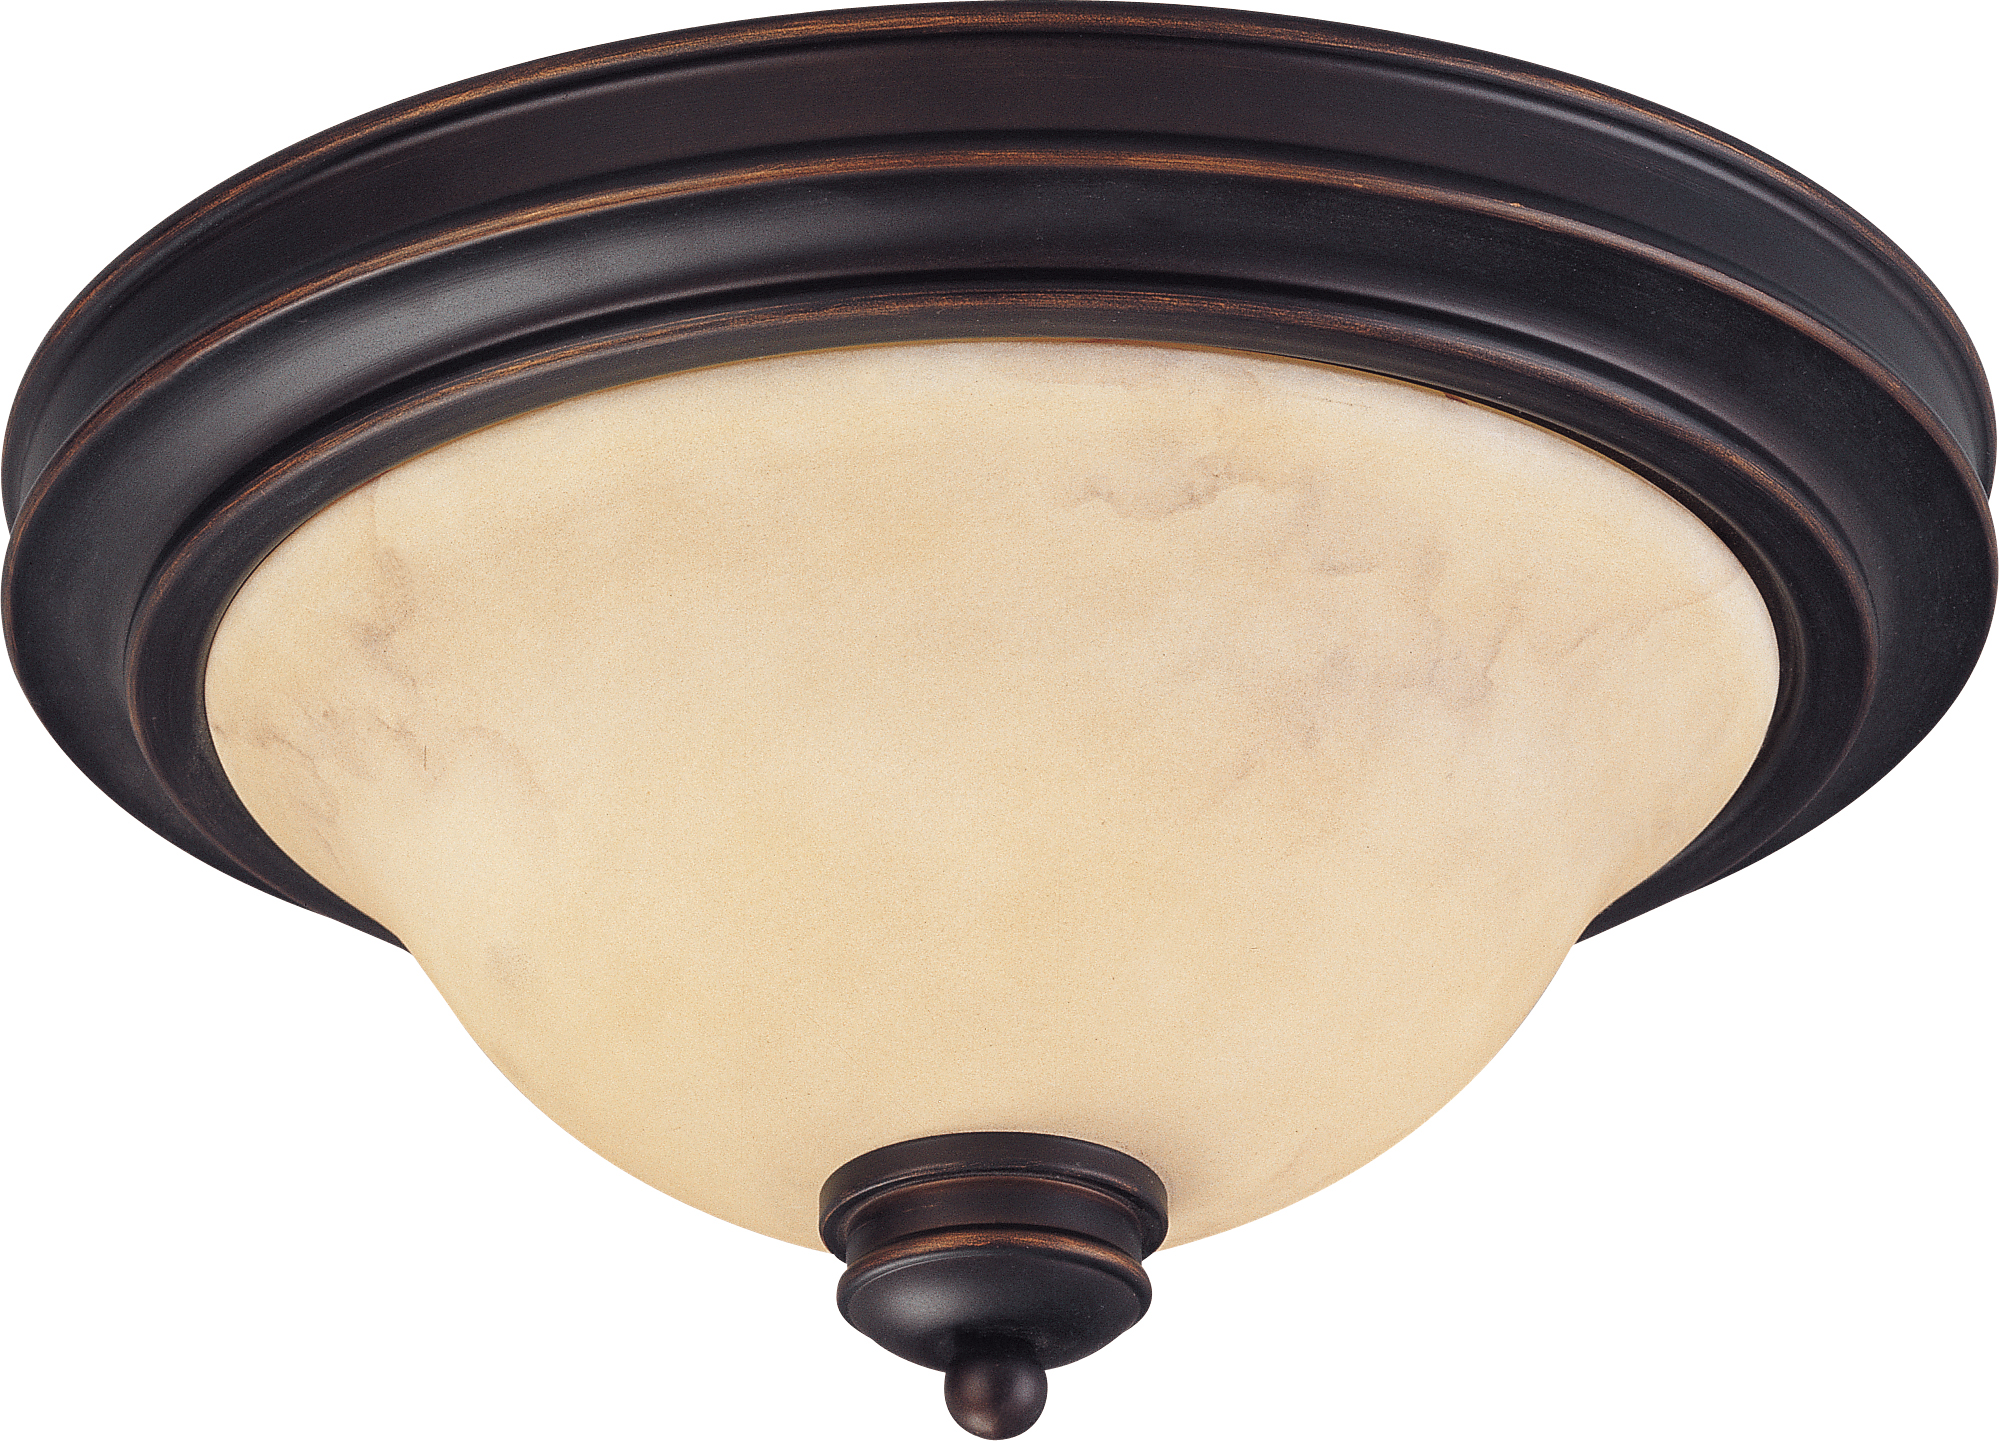 Home fixtures nuvo lighting 60 1406 2 lights 13 copper espresso close to ceiling with honey marble glass traditional style fixture